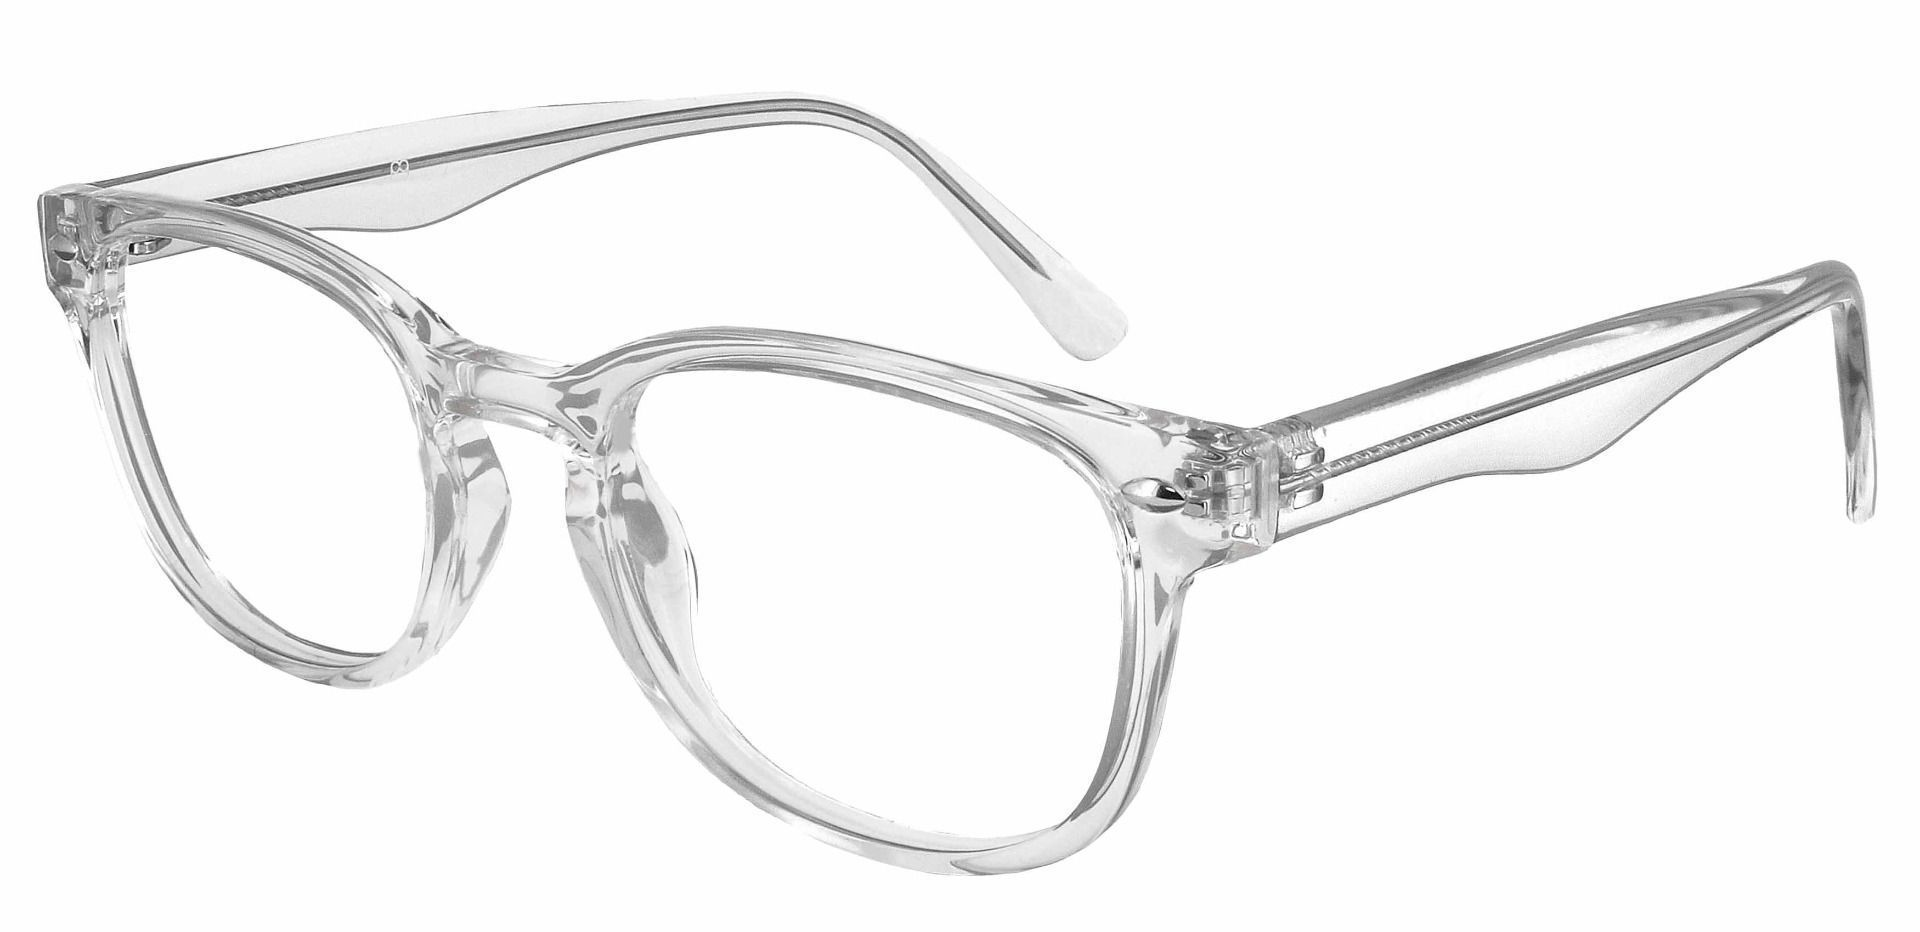 Swirl Classic Square Progressive Glasses - Clear